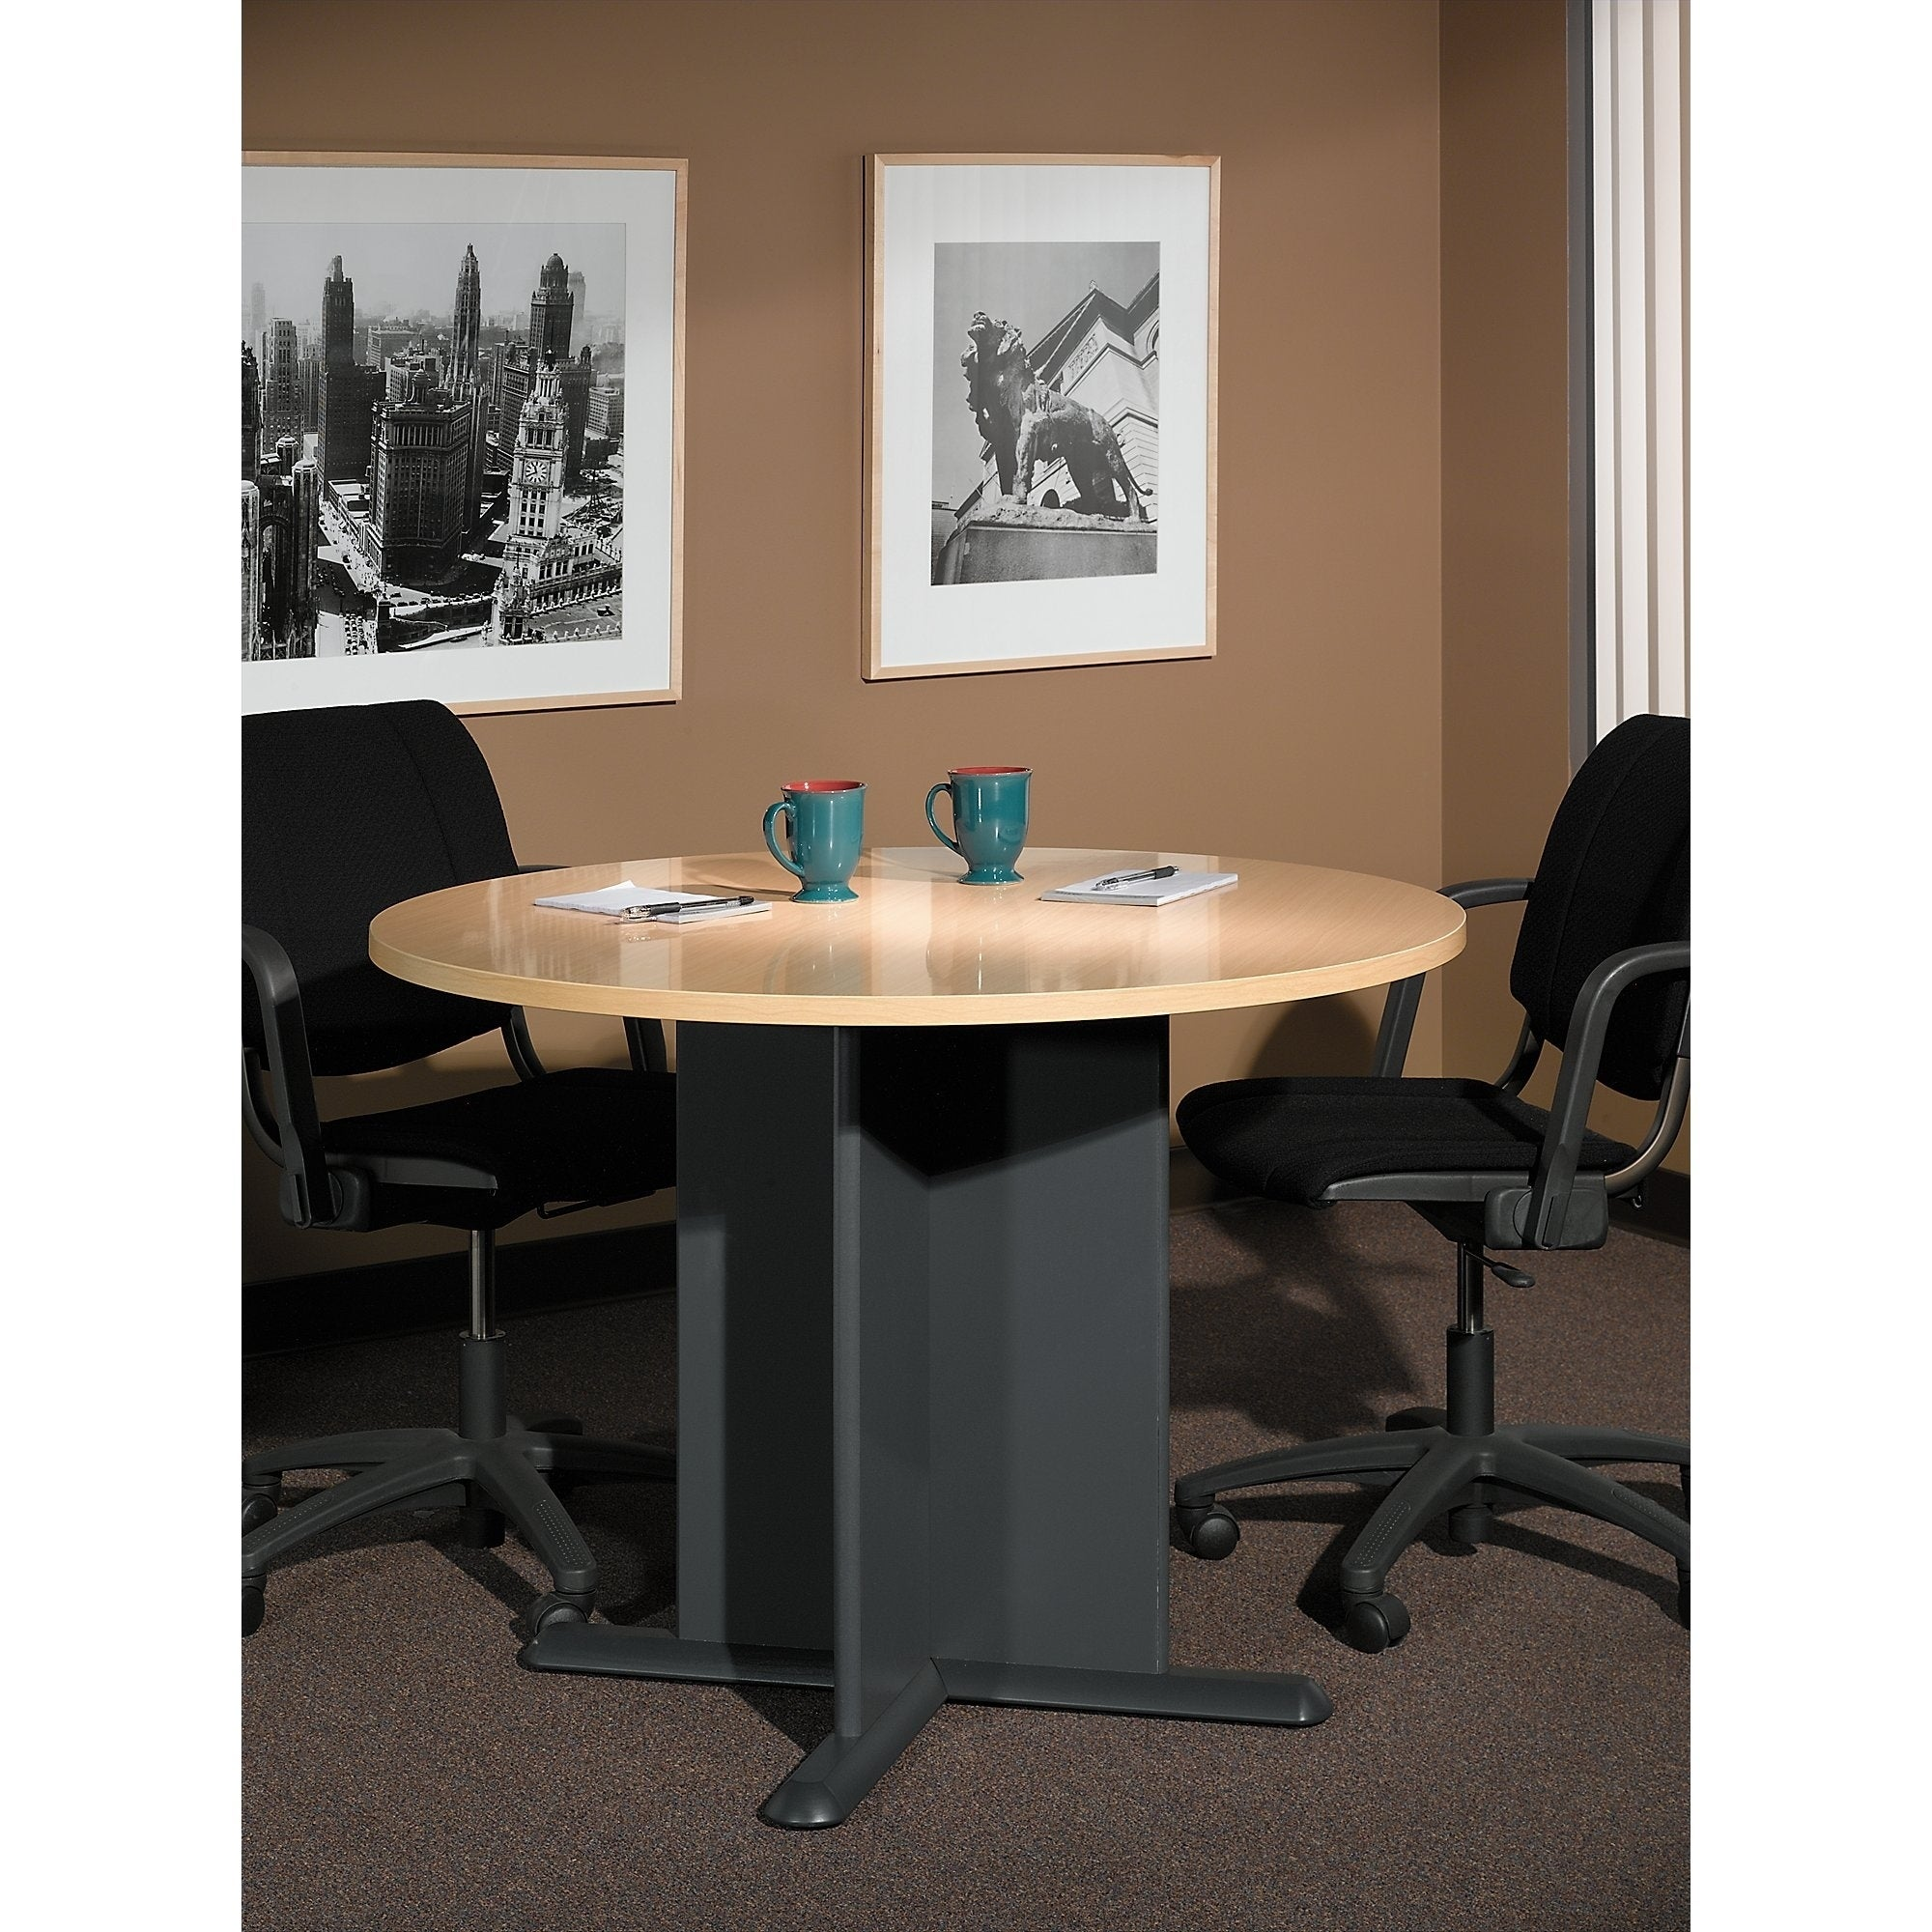 Beau Bush Business Series A U0026 C 42 Inch Round Conference Table In Beech